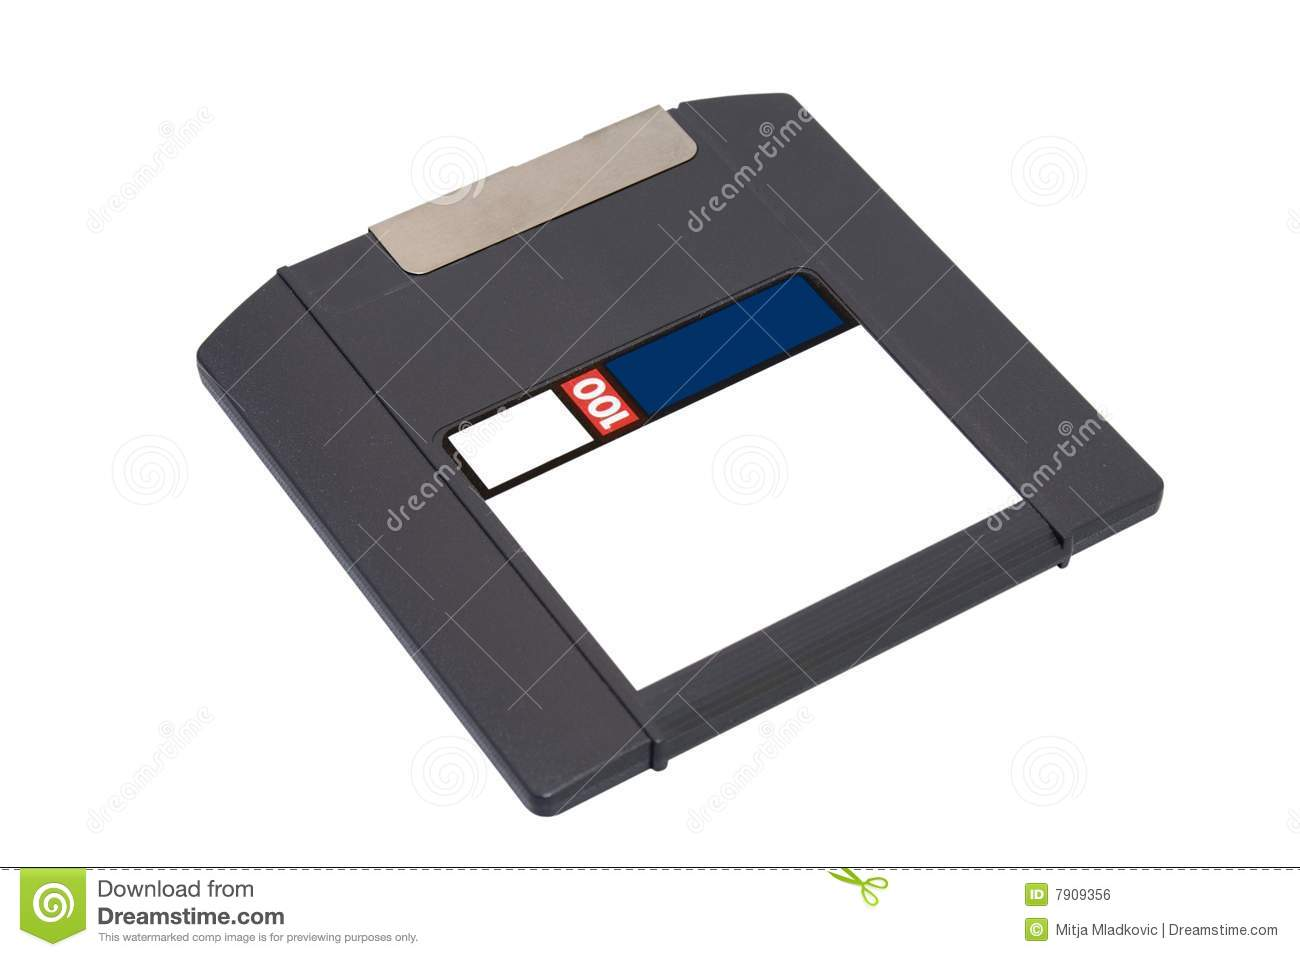 Old floppy disk royalty free stock image image 7909356 - Uses for old floppy disks ...